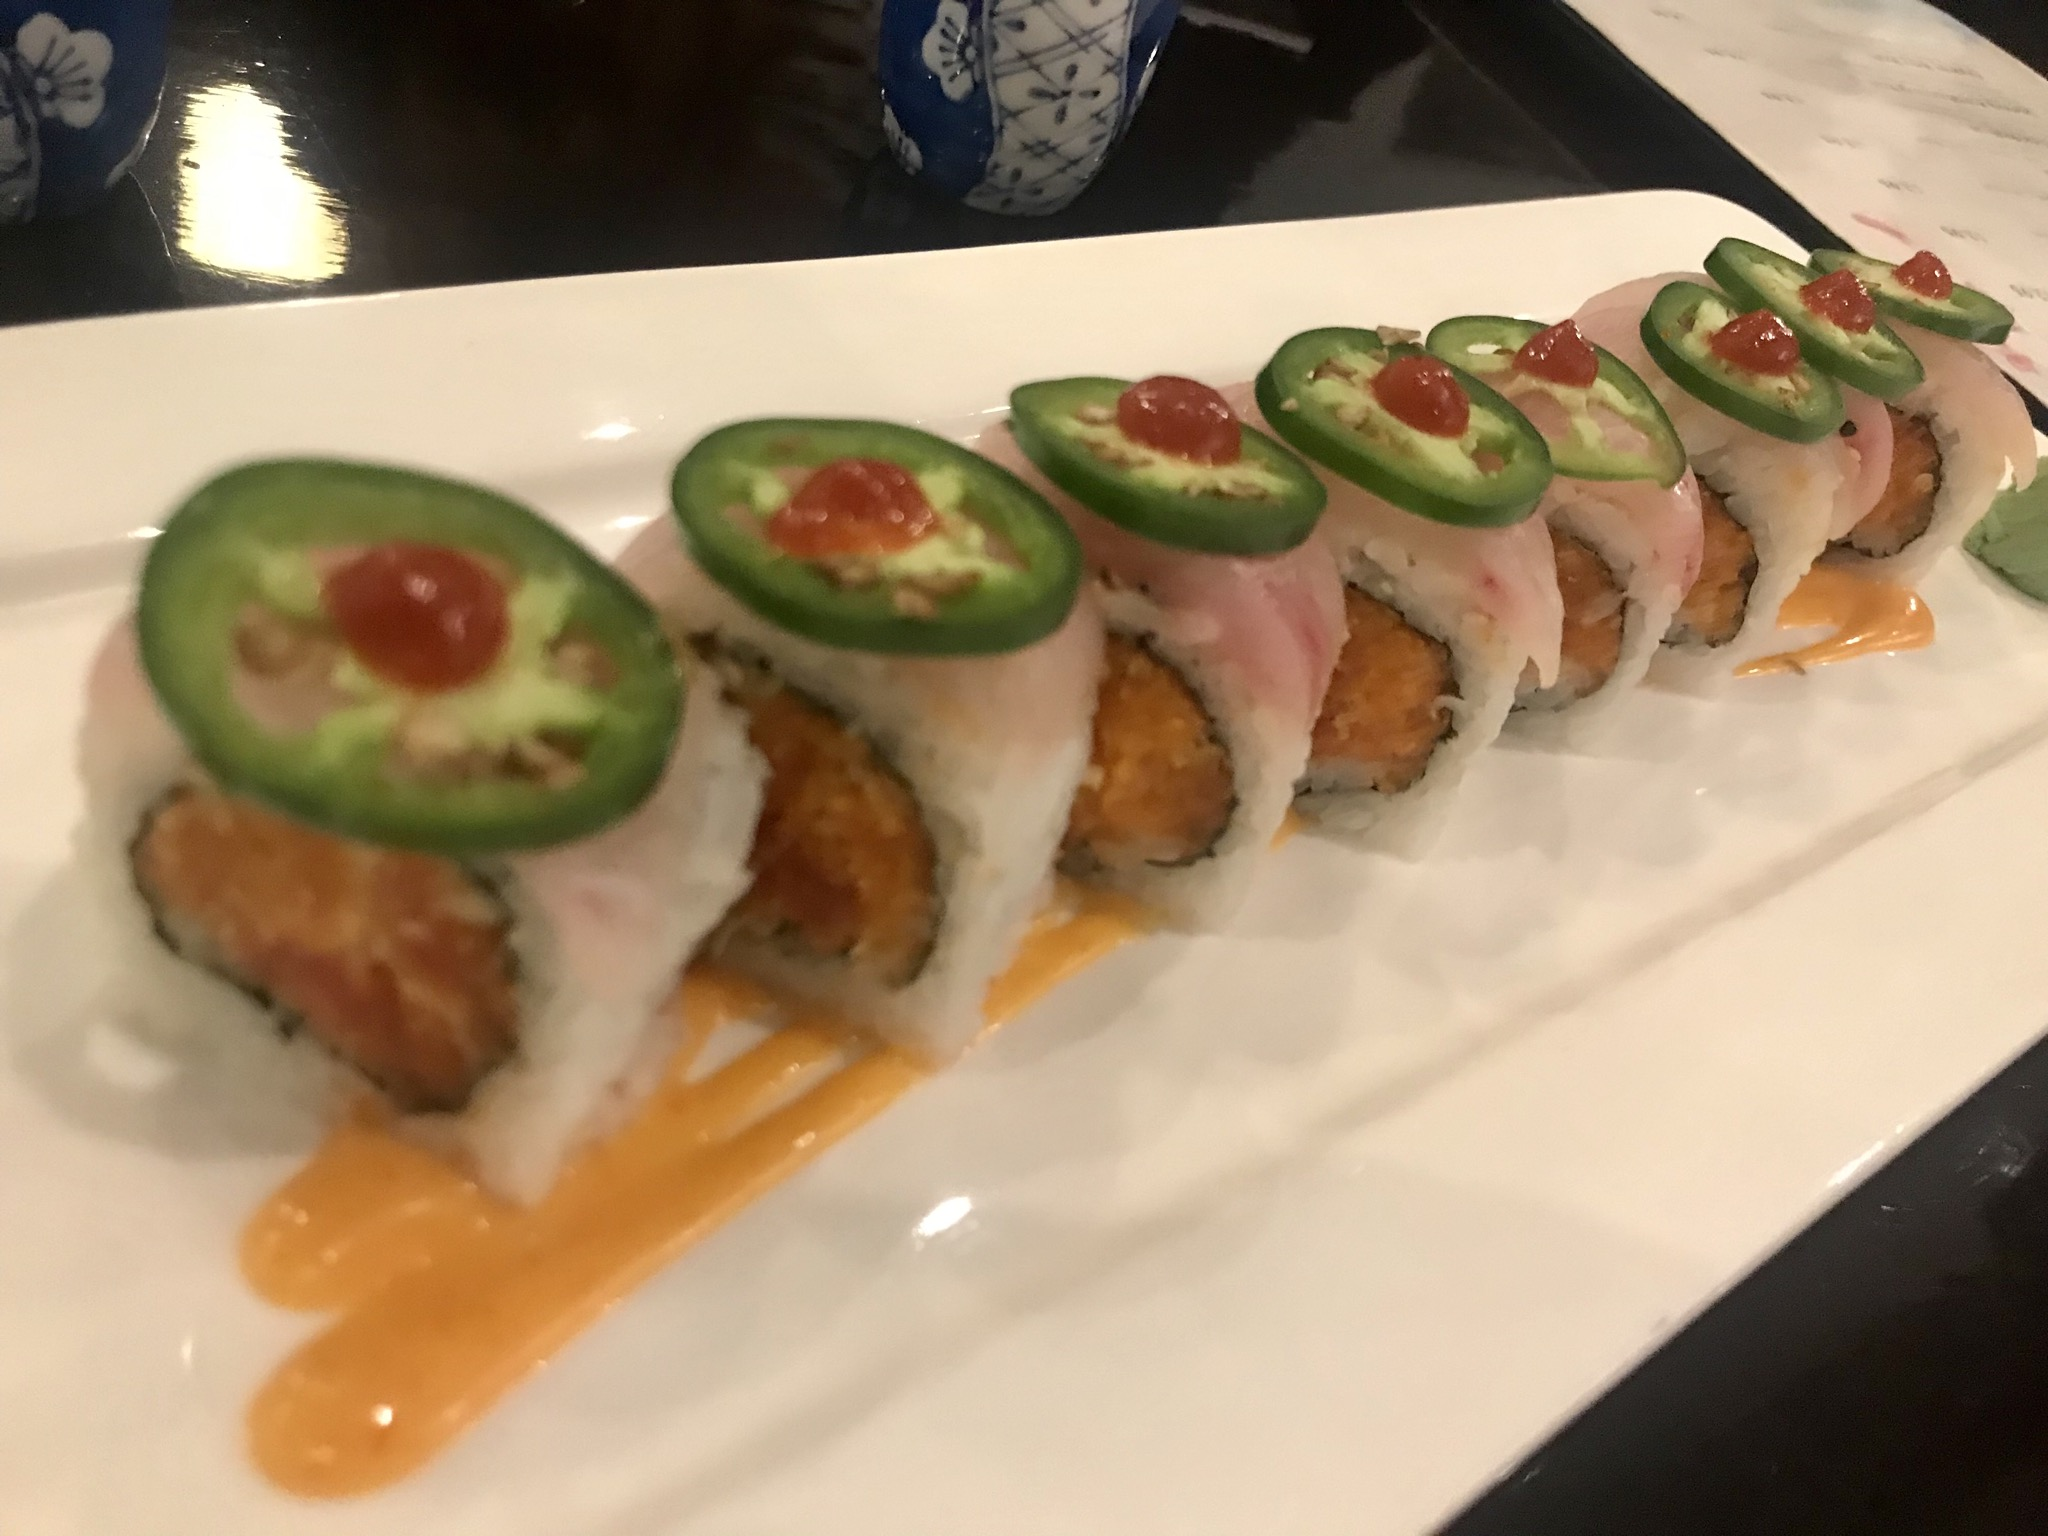 Nikko Sushi in Pasco - November 16 2018